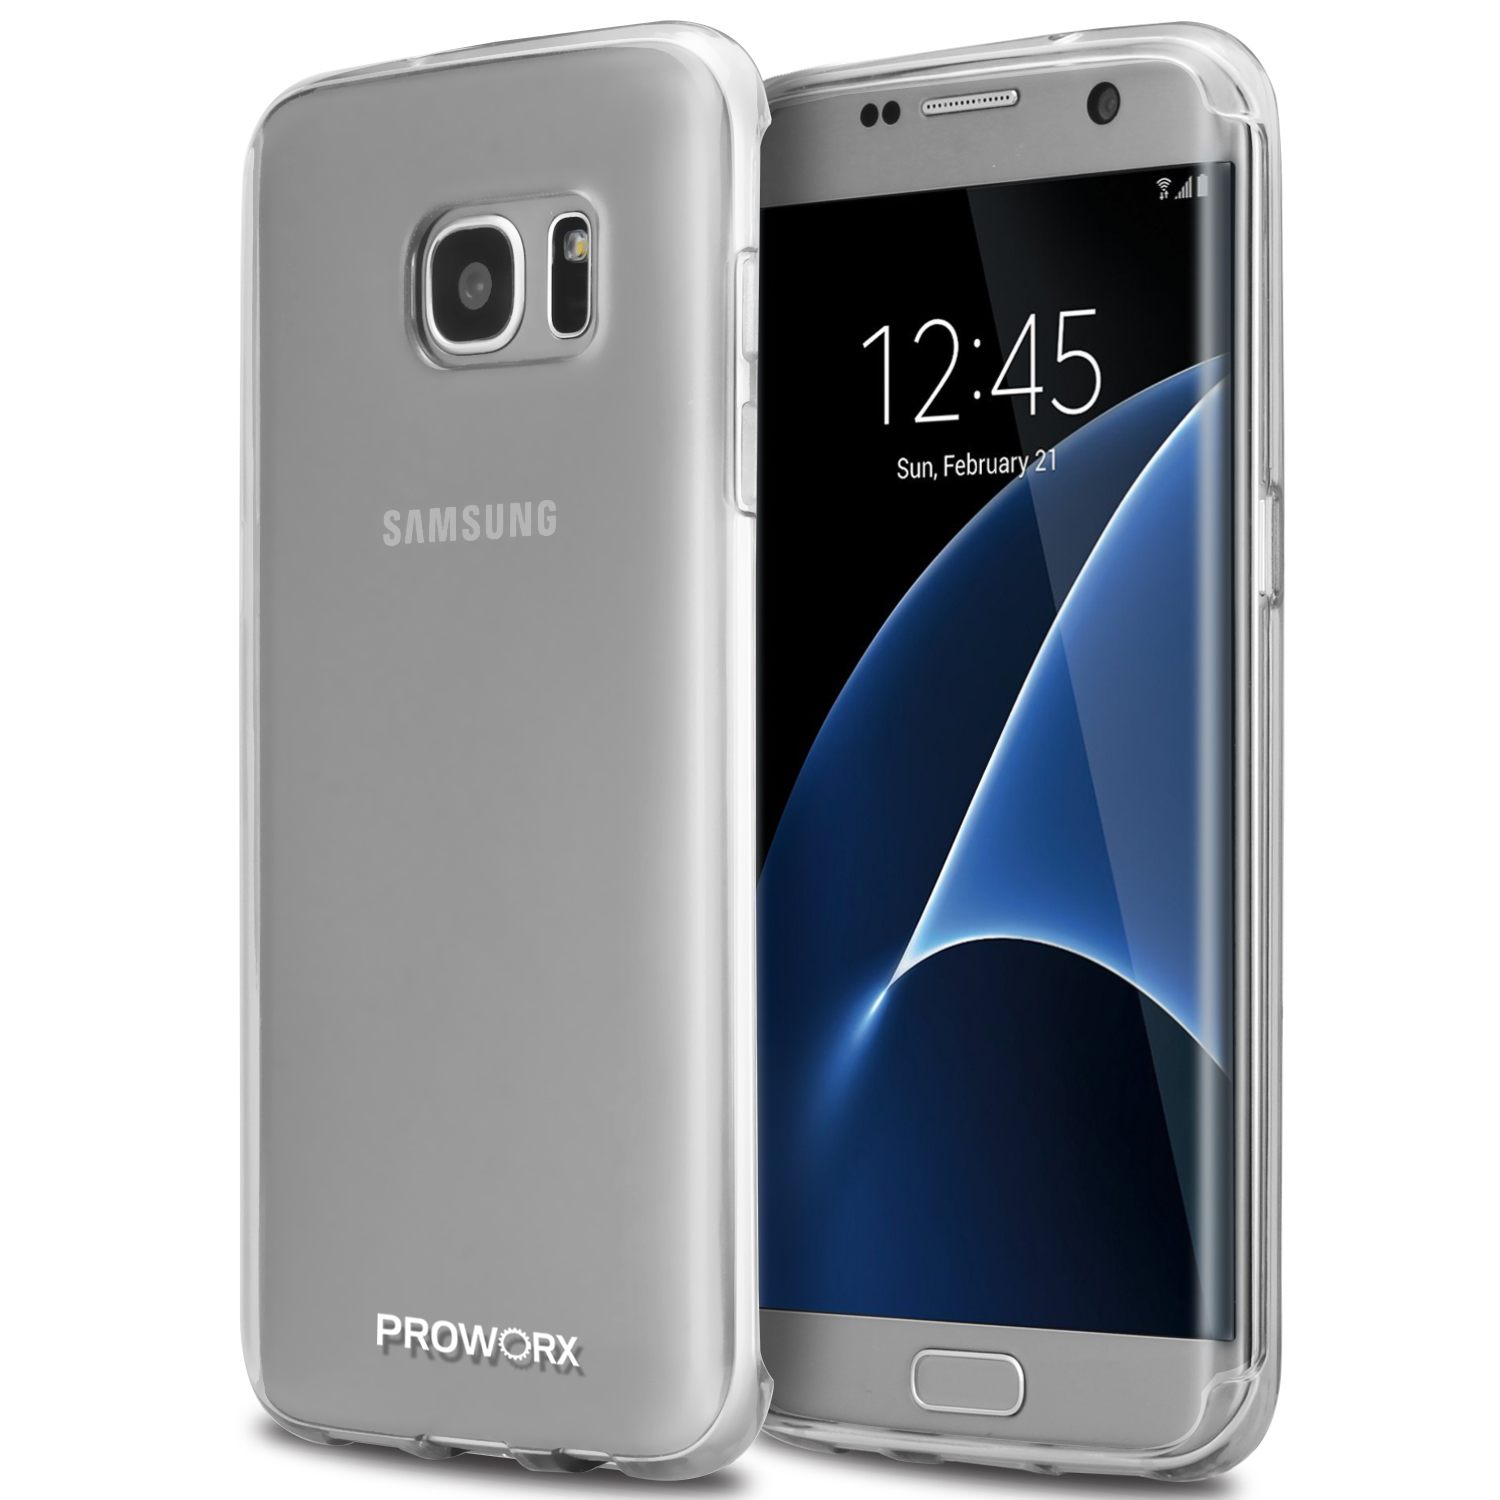 Samsung Galaxy S7 Edge Clear ProWorx Ultra Slim Thin Scratch Resistant TPU Silicone Case Cover